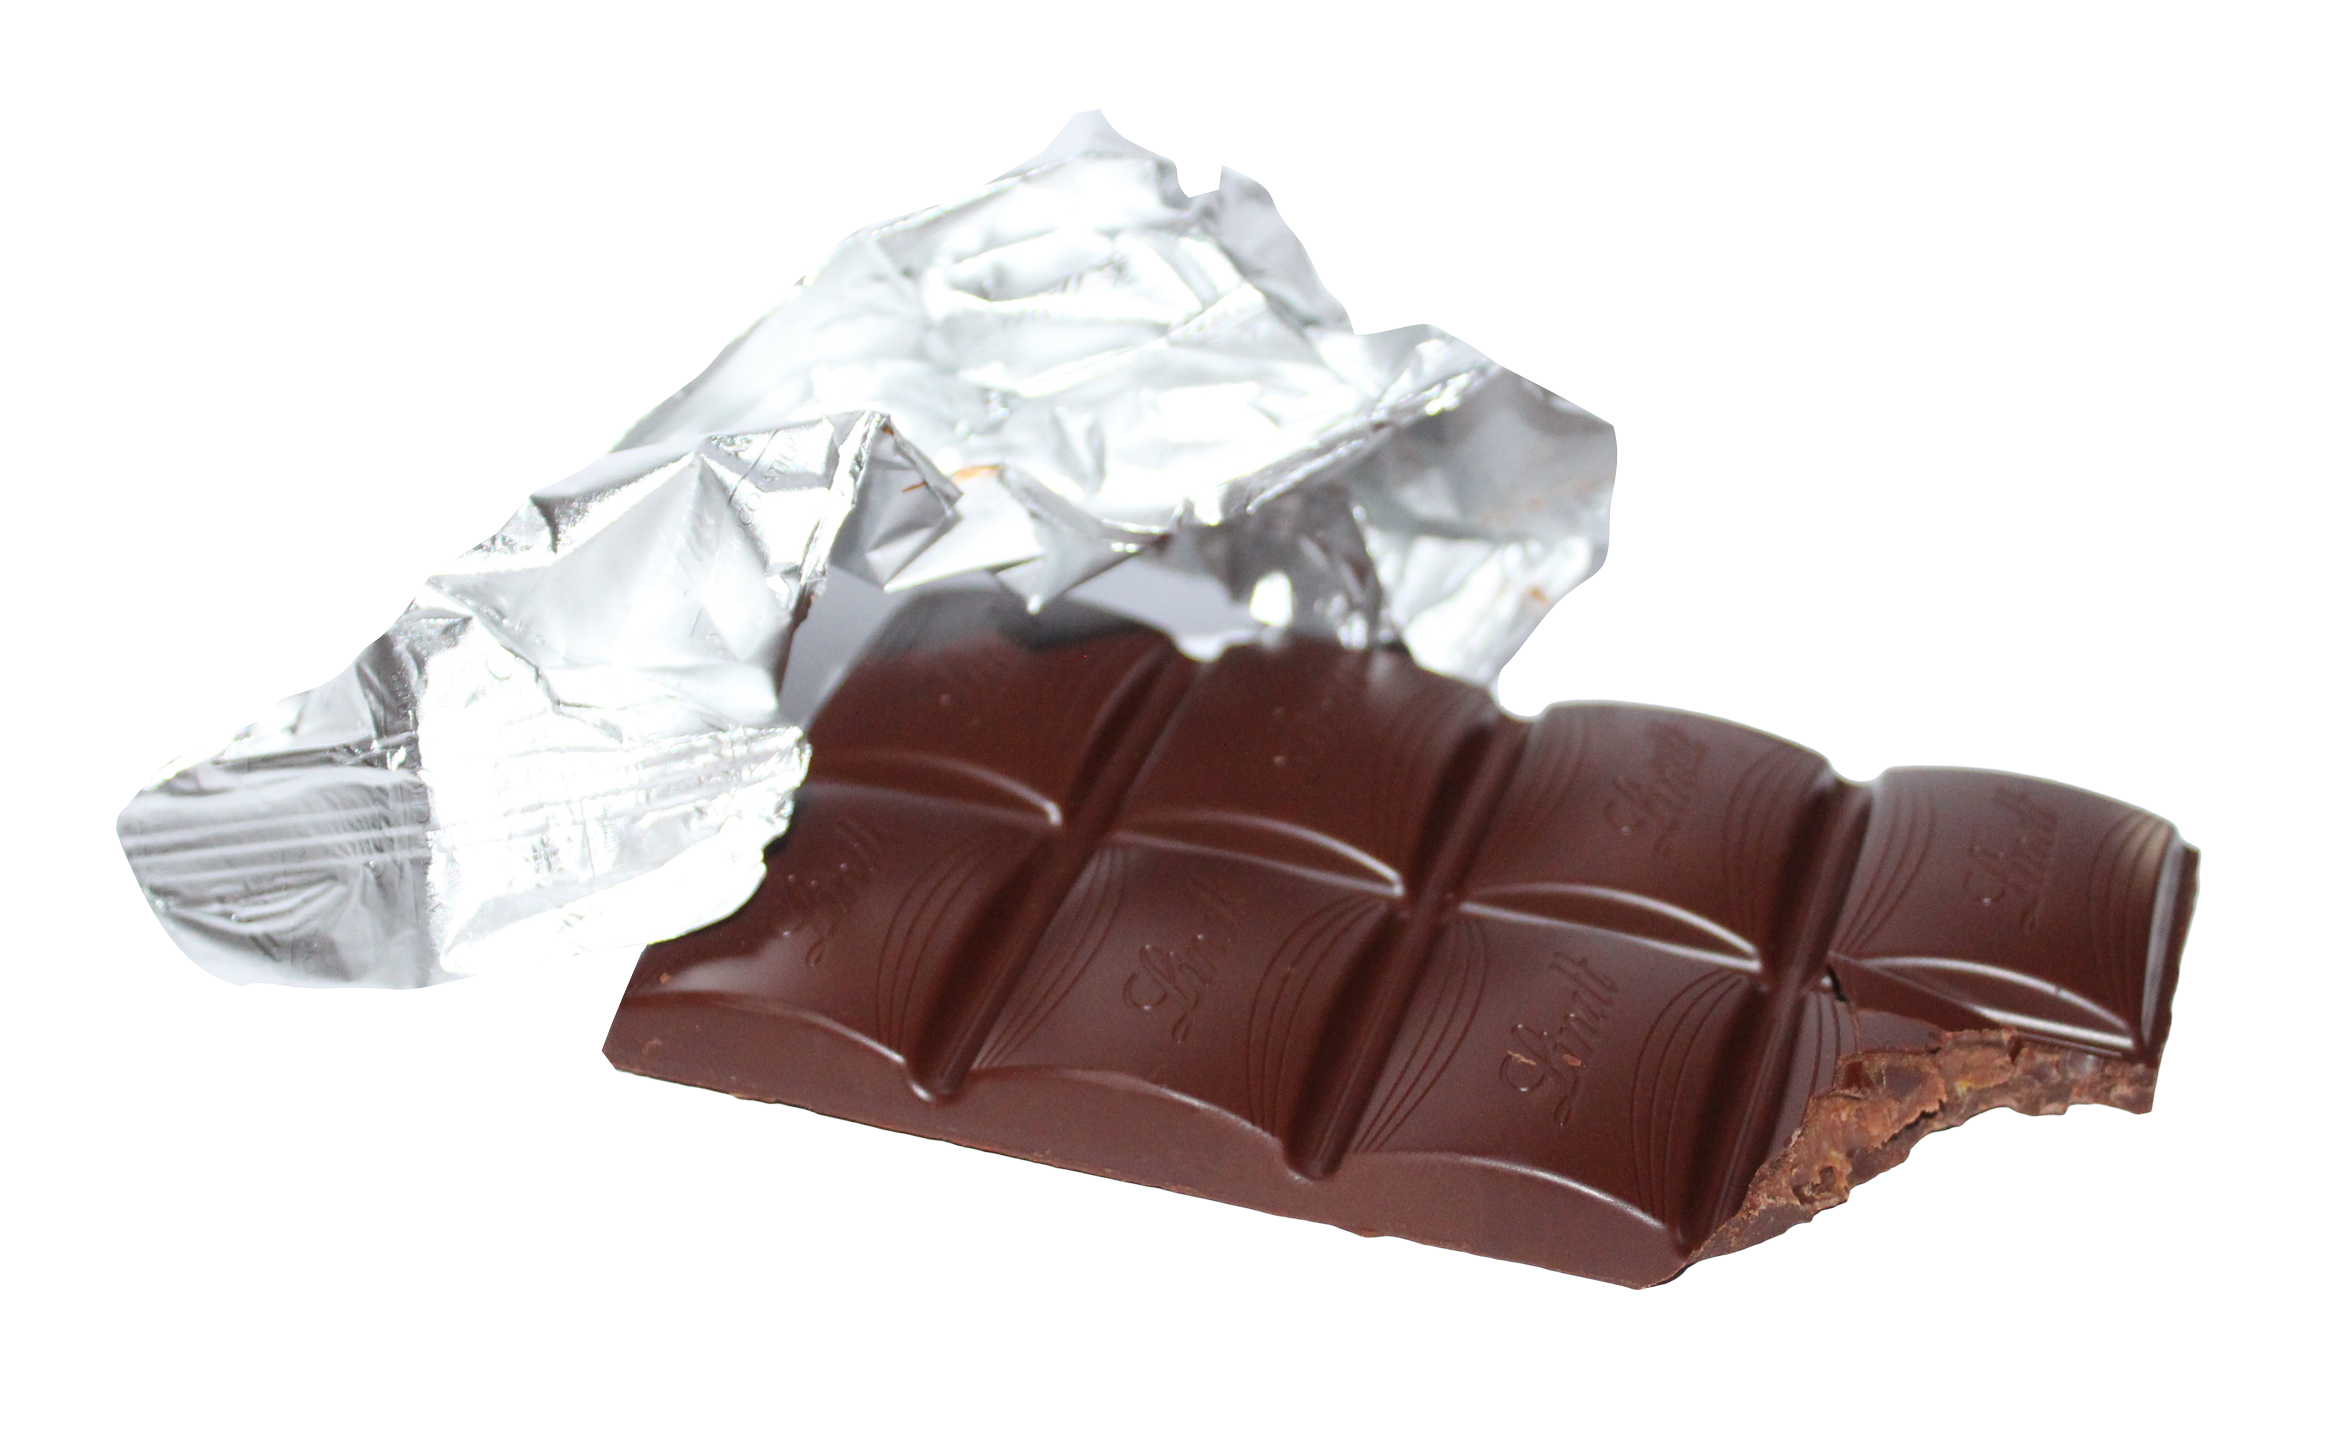 Chocolate PNG - 20251